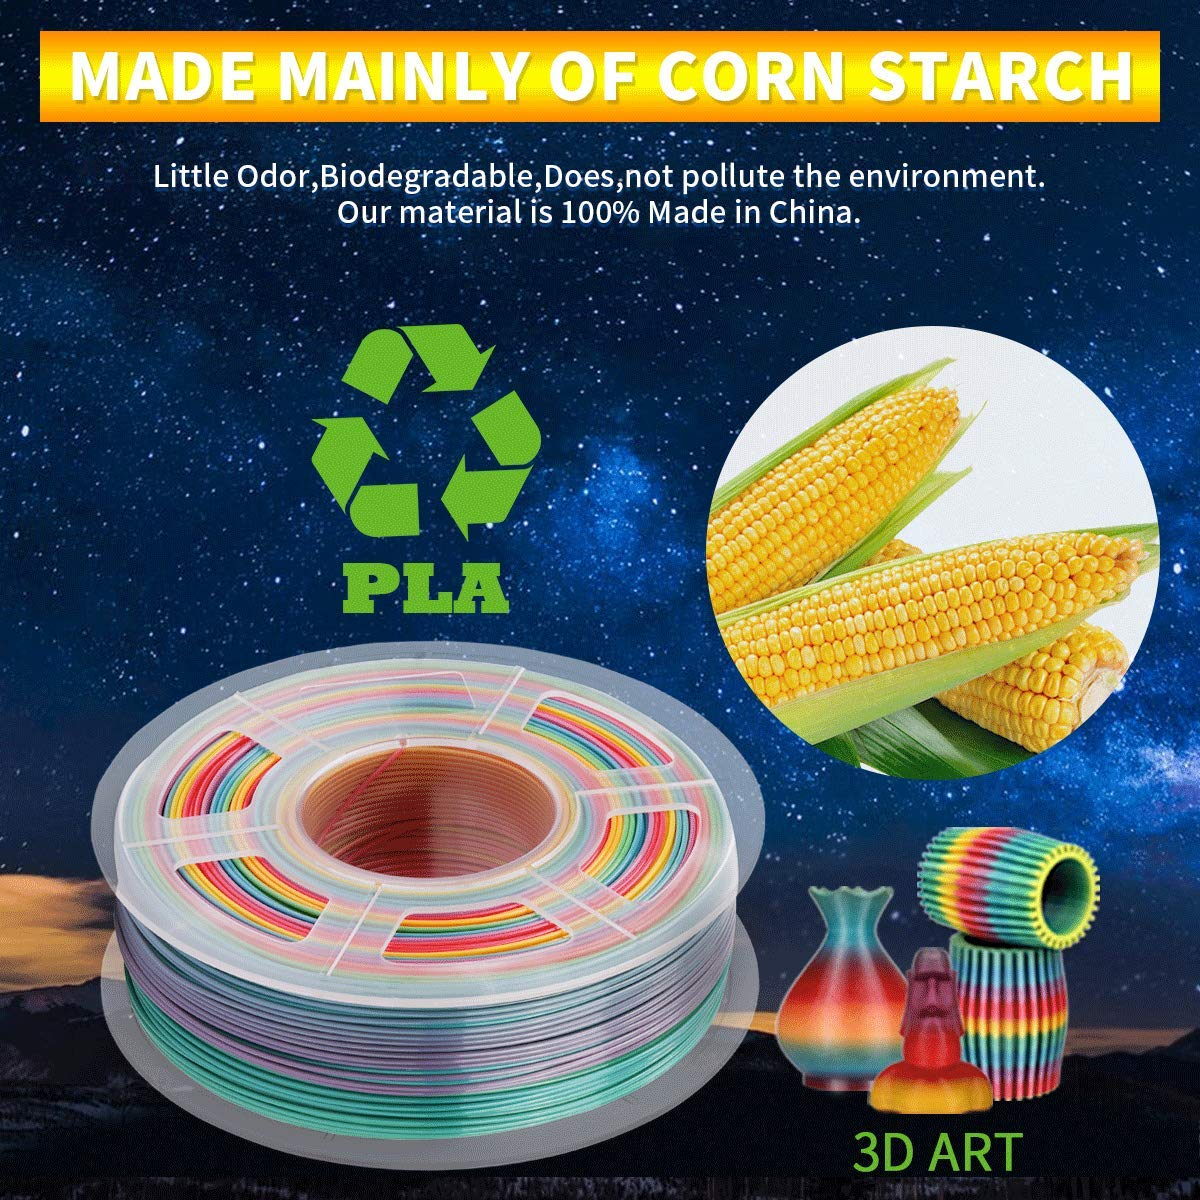 Real Wood Filament // Dimensional Accuracy 0.02 mm SUNLU Wood 3D Printer Filament 1.75mm PLA Filament 1kg//Spool for 3D Printing